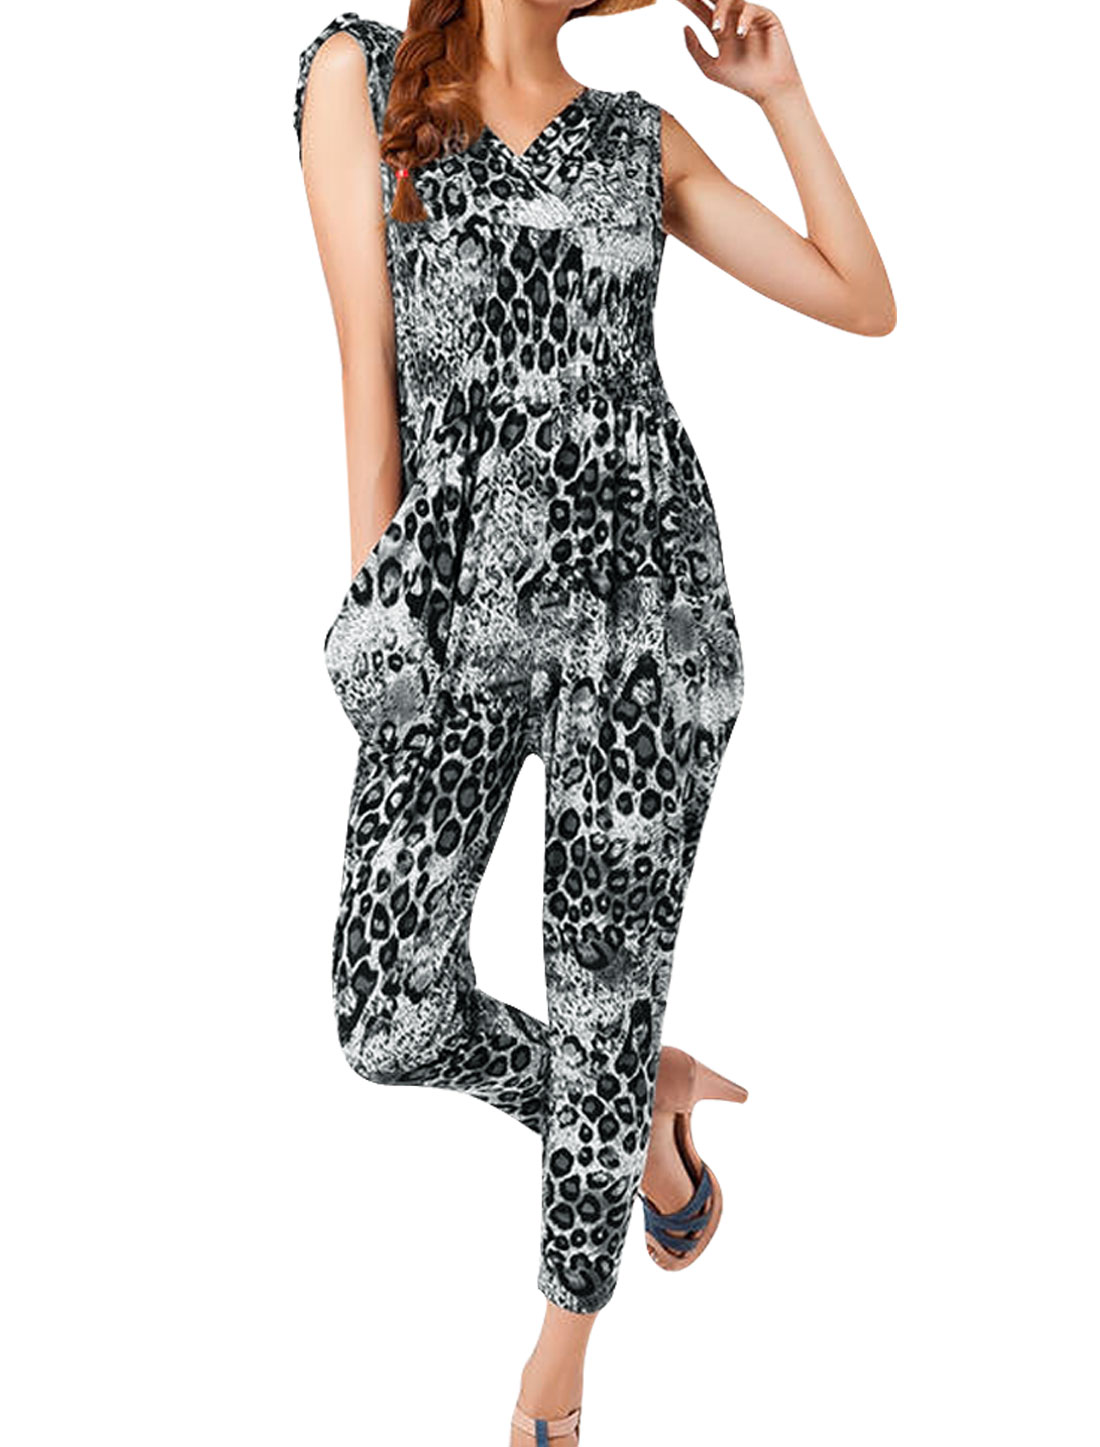 Women Deep V Neck Elastic Waist Sleeveless Design Casual Jumpsuit Grey XS